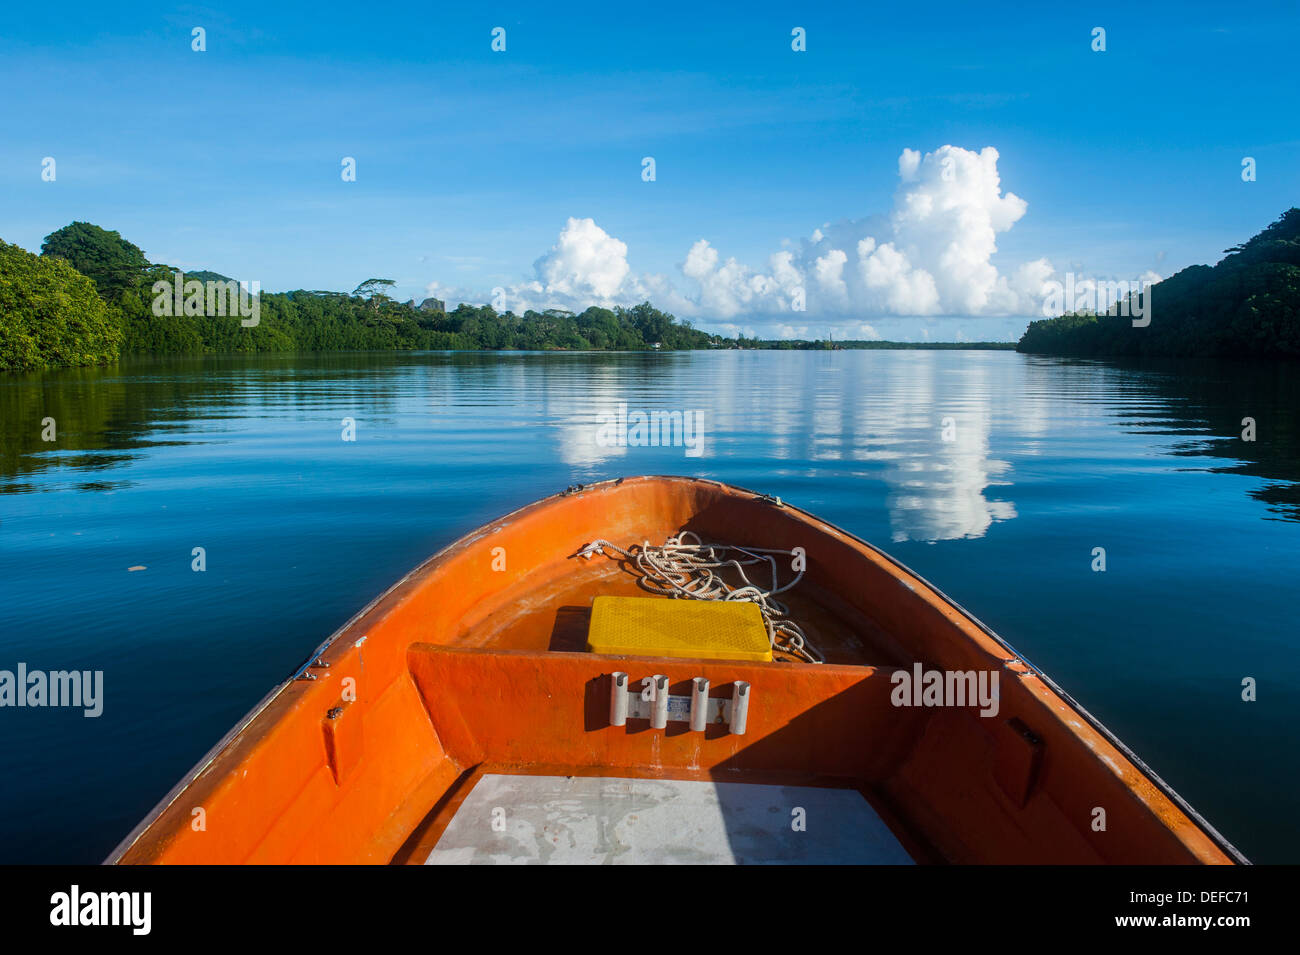 Boat cruising on a river in Pohnpei (Ponape), Federated States of Micronesia, Caroline Islands, Central Pacific, Pacific - Stock Image